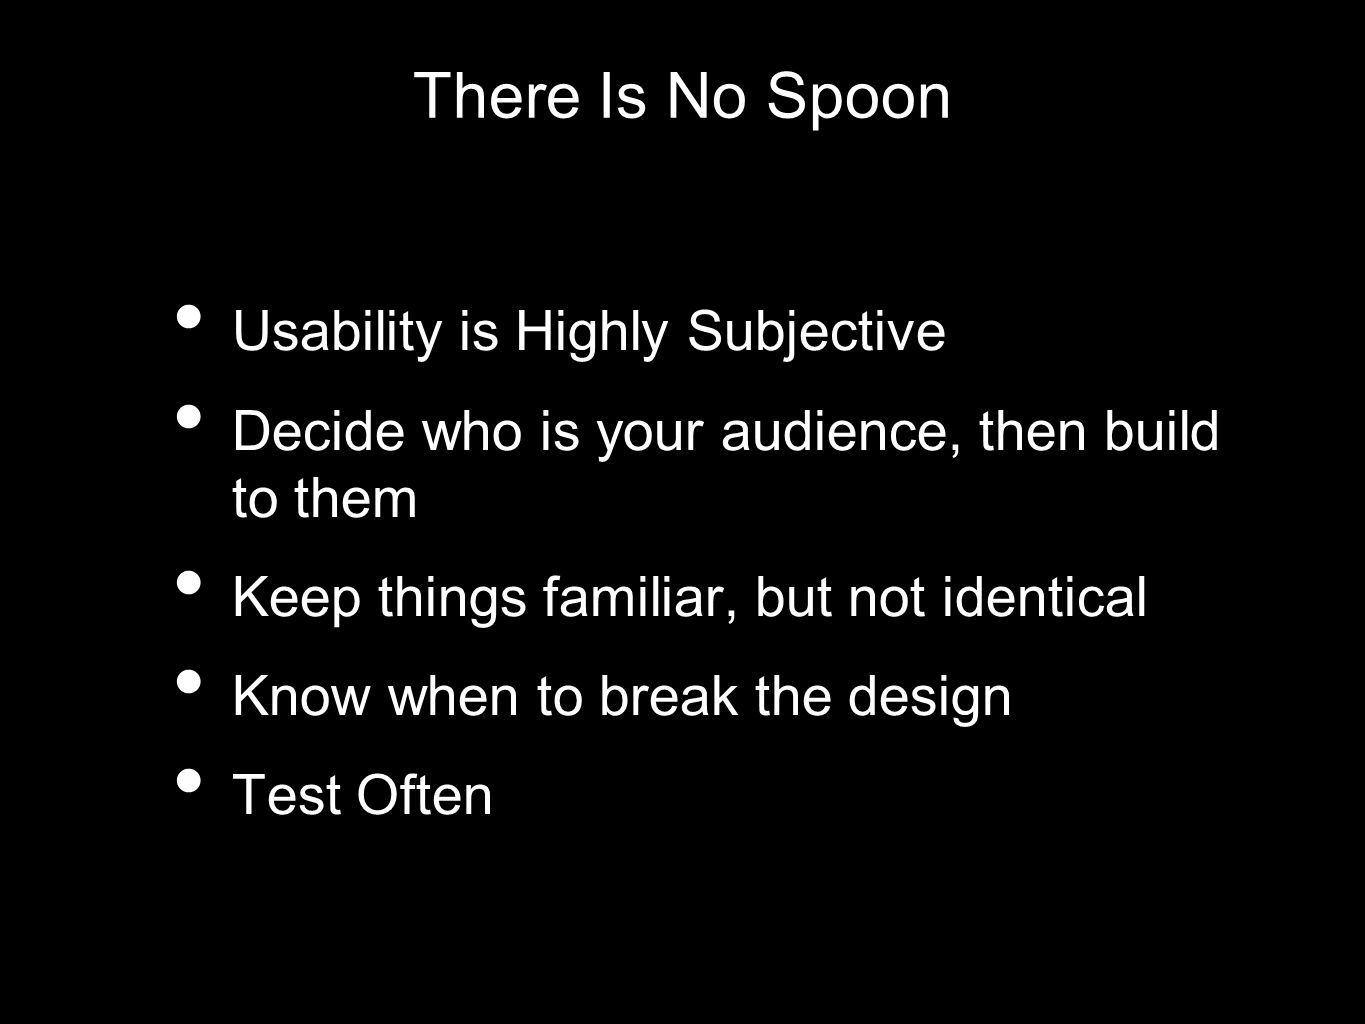 There Is No Spoon Usability is Highly Subjective Decide who is your audience, then build to them Keep things familiar, but not identical Know when to break the design Test Often